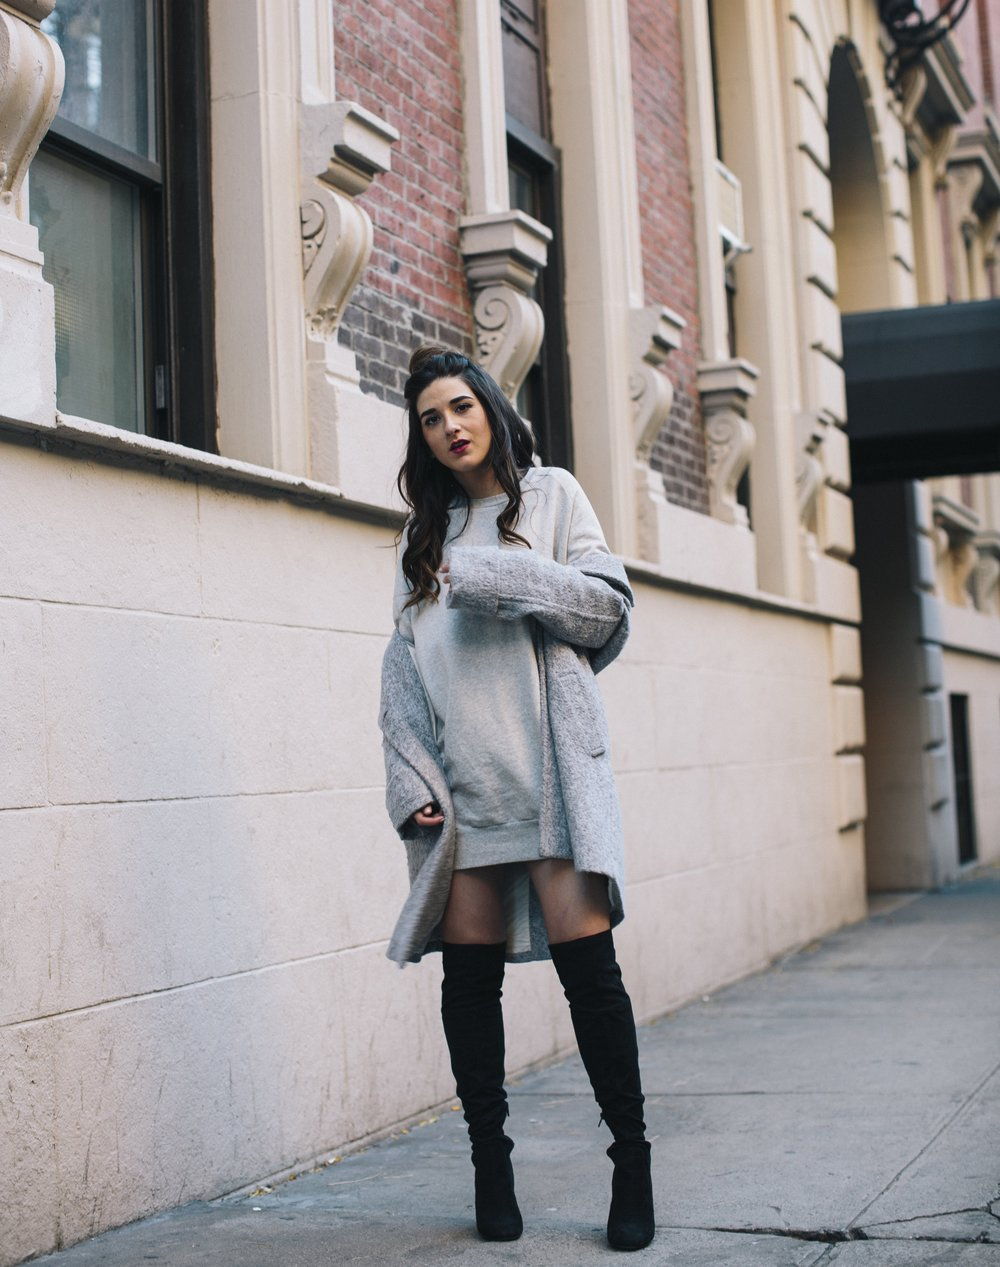 All Grey Look OTK Boots Why I Hate Fashion Week Esther Santer Fashion Blog Louboutins & Love NYC Street Style Blogger Outfit OOTD Trendy Sweatshirt Dress Topknot Coat Women Girl Shoes Shopping Zara Beauty Accessories Monochome Wear Clothes Winter Look.jpg